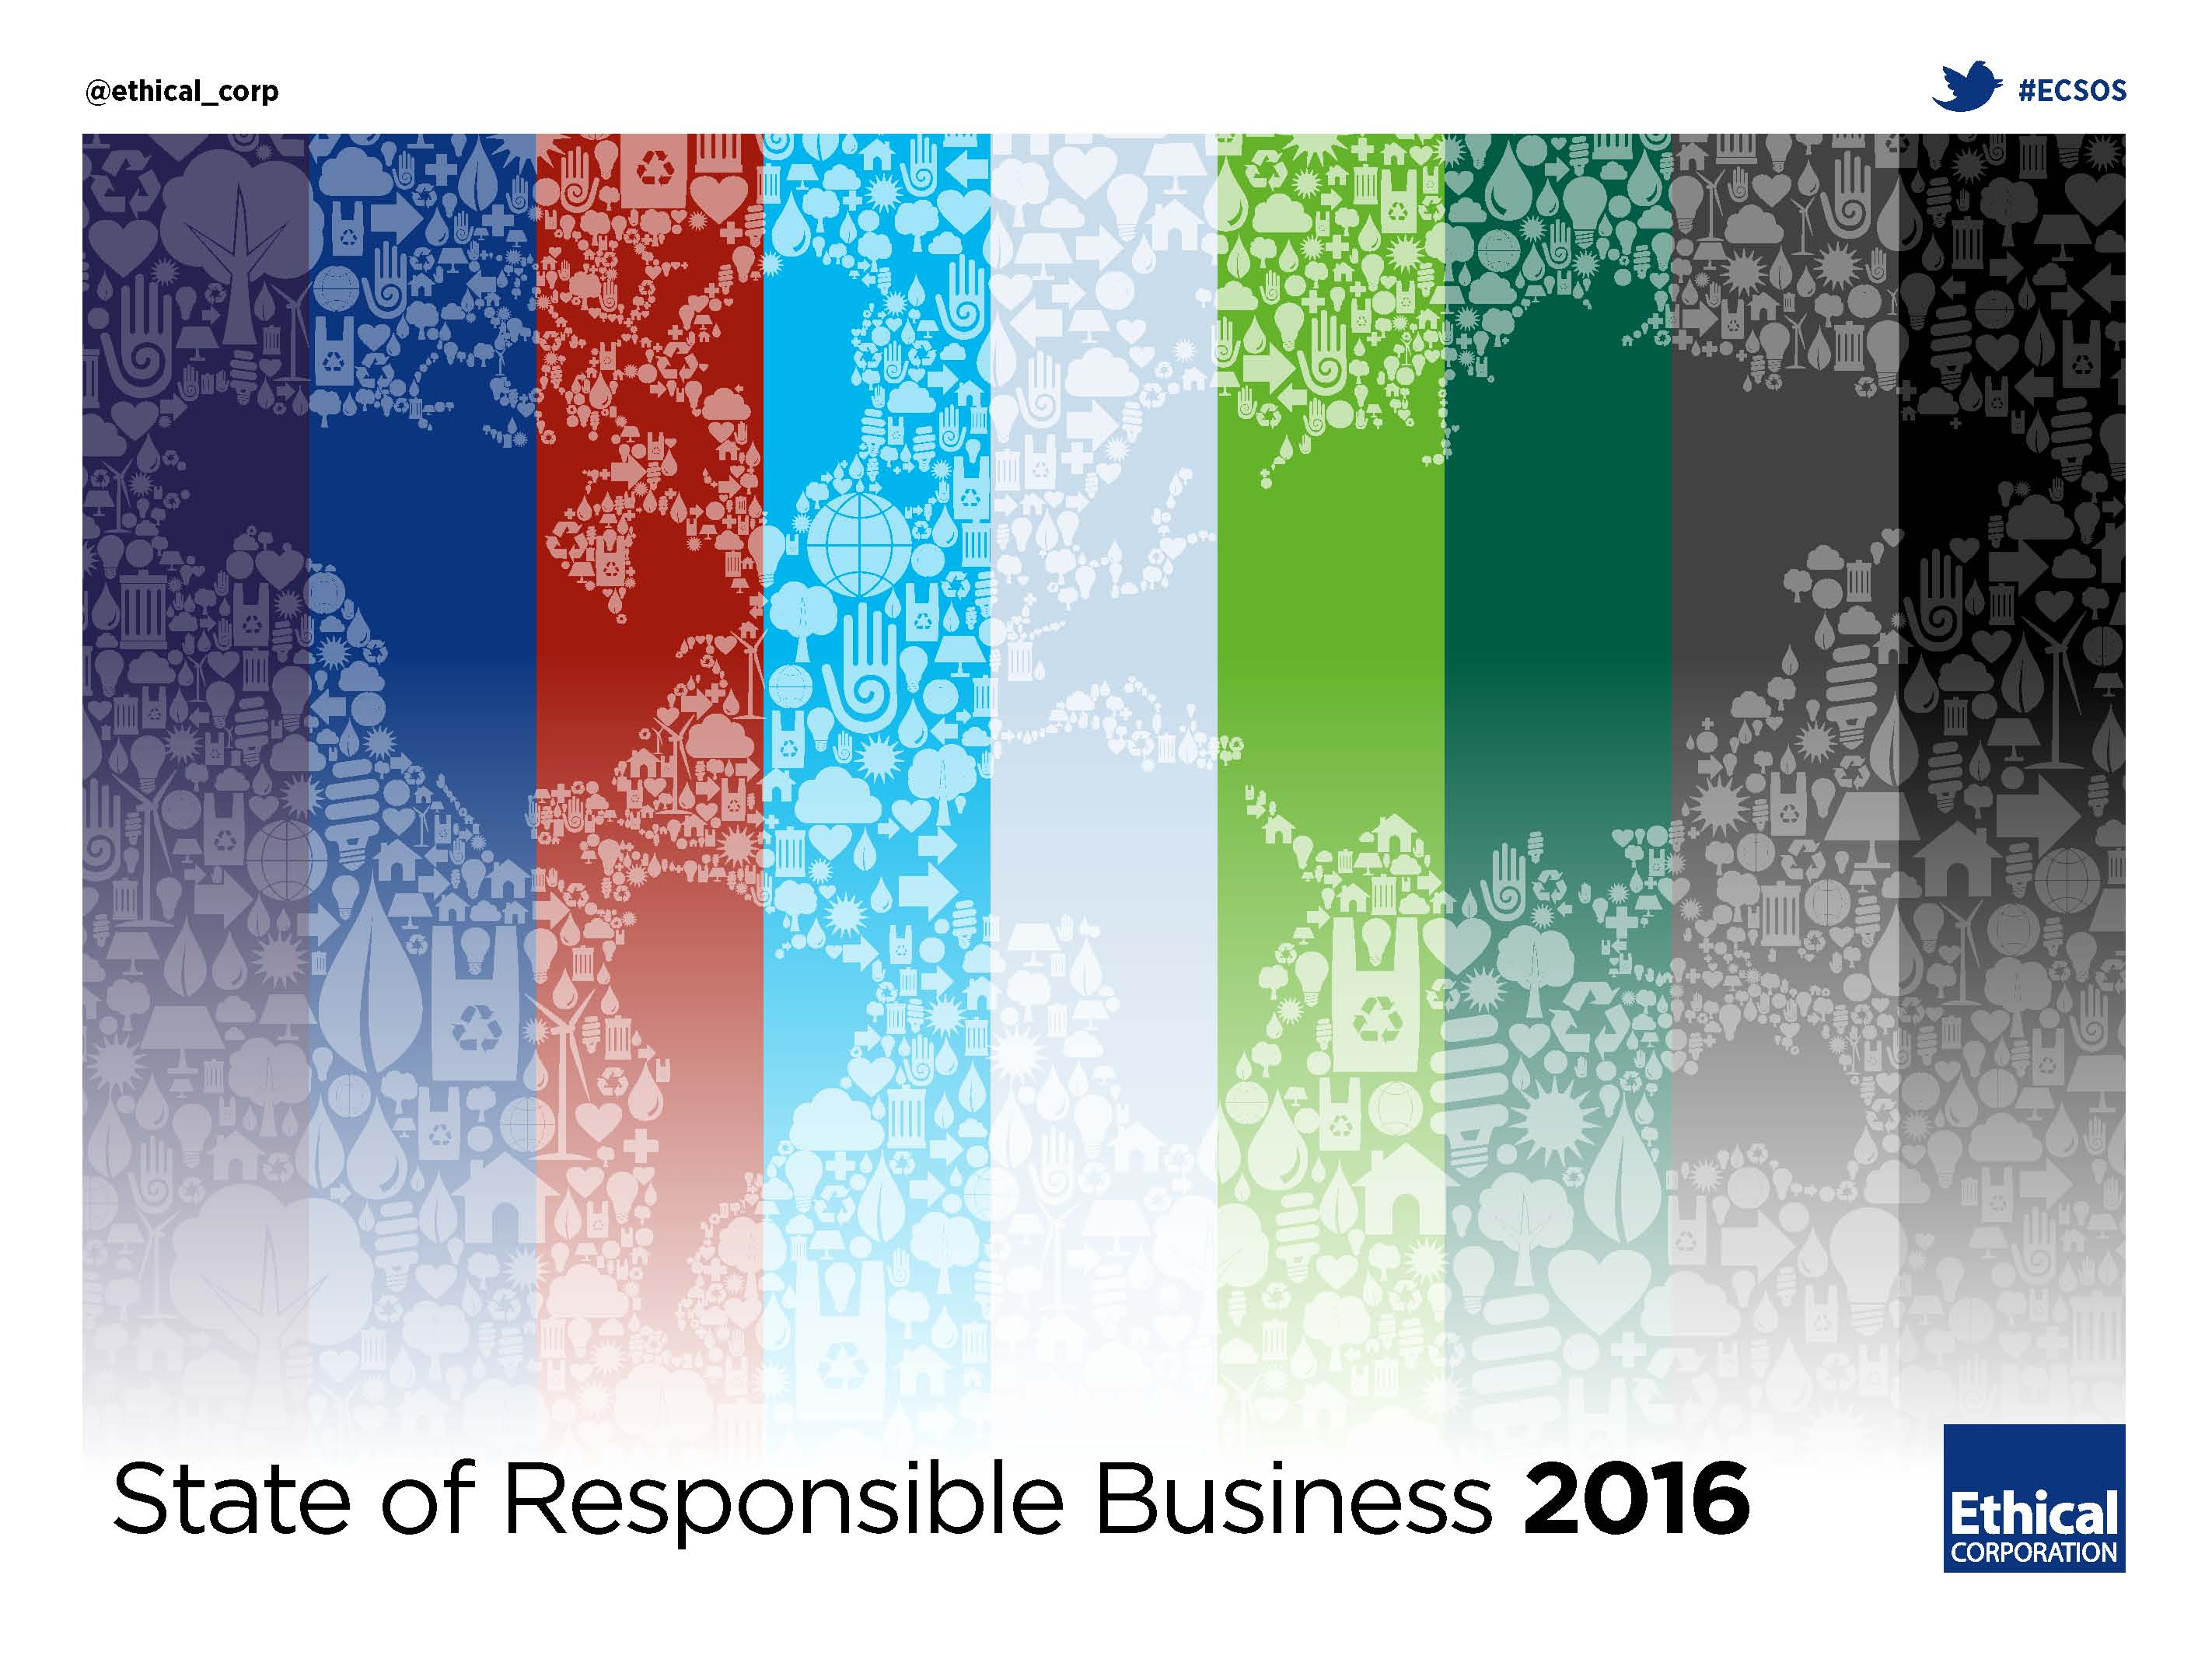 State of Responsible Business: 'Good progress, lots of room for